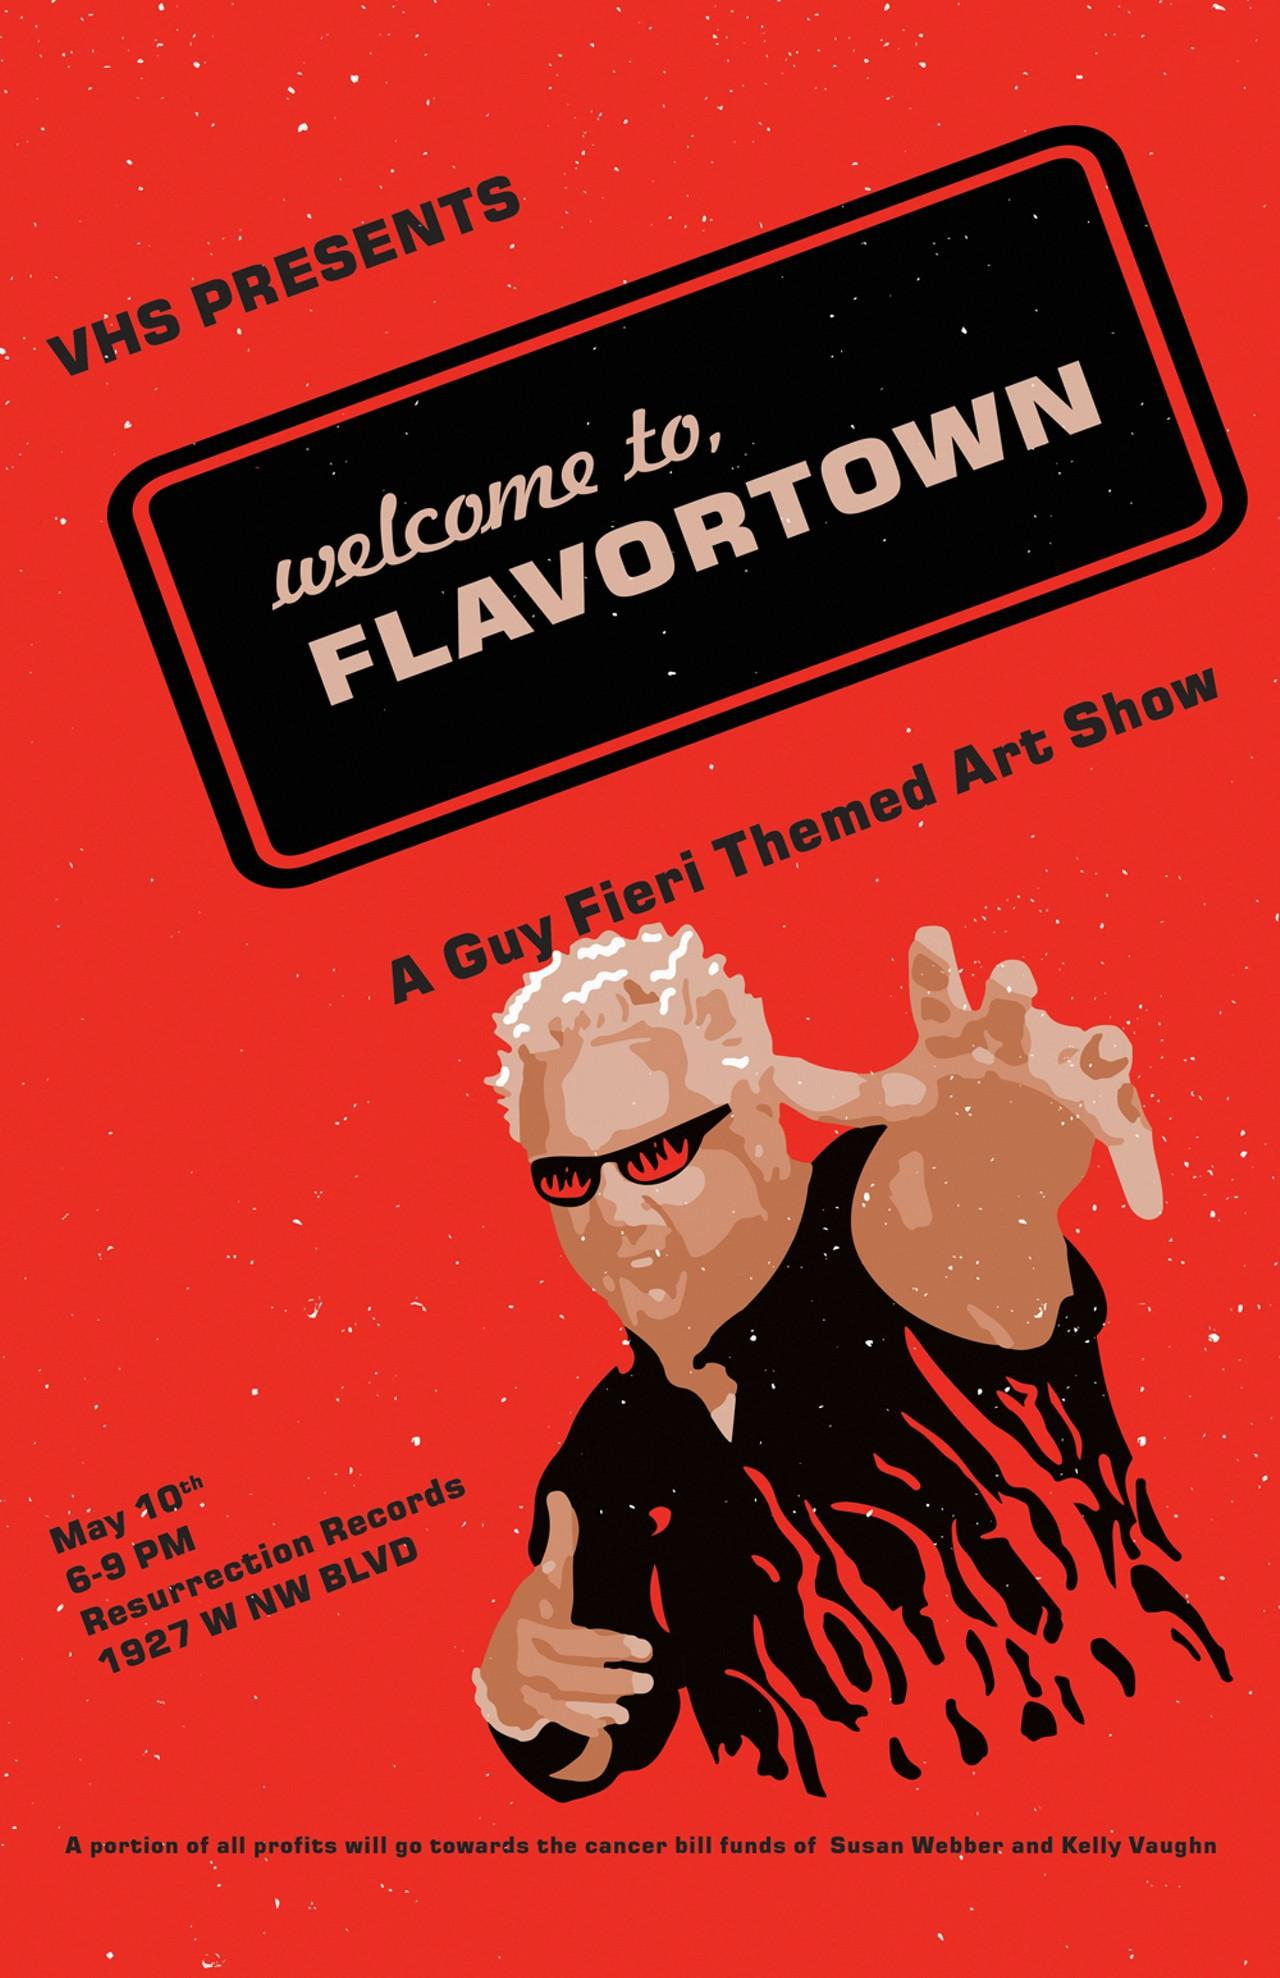 It's just a photo of Striking Guy Fieri Drawing